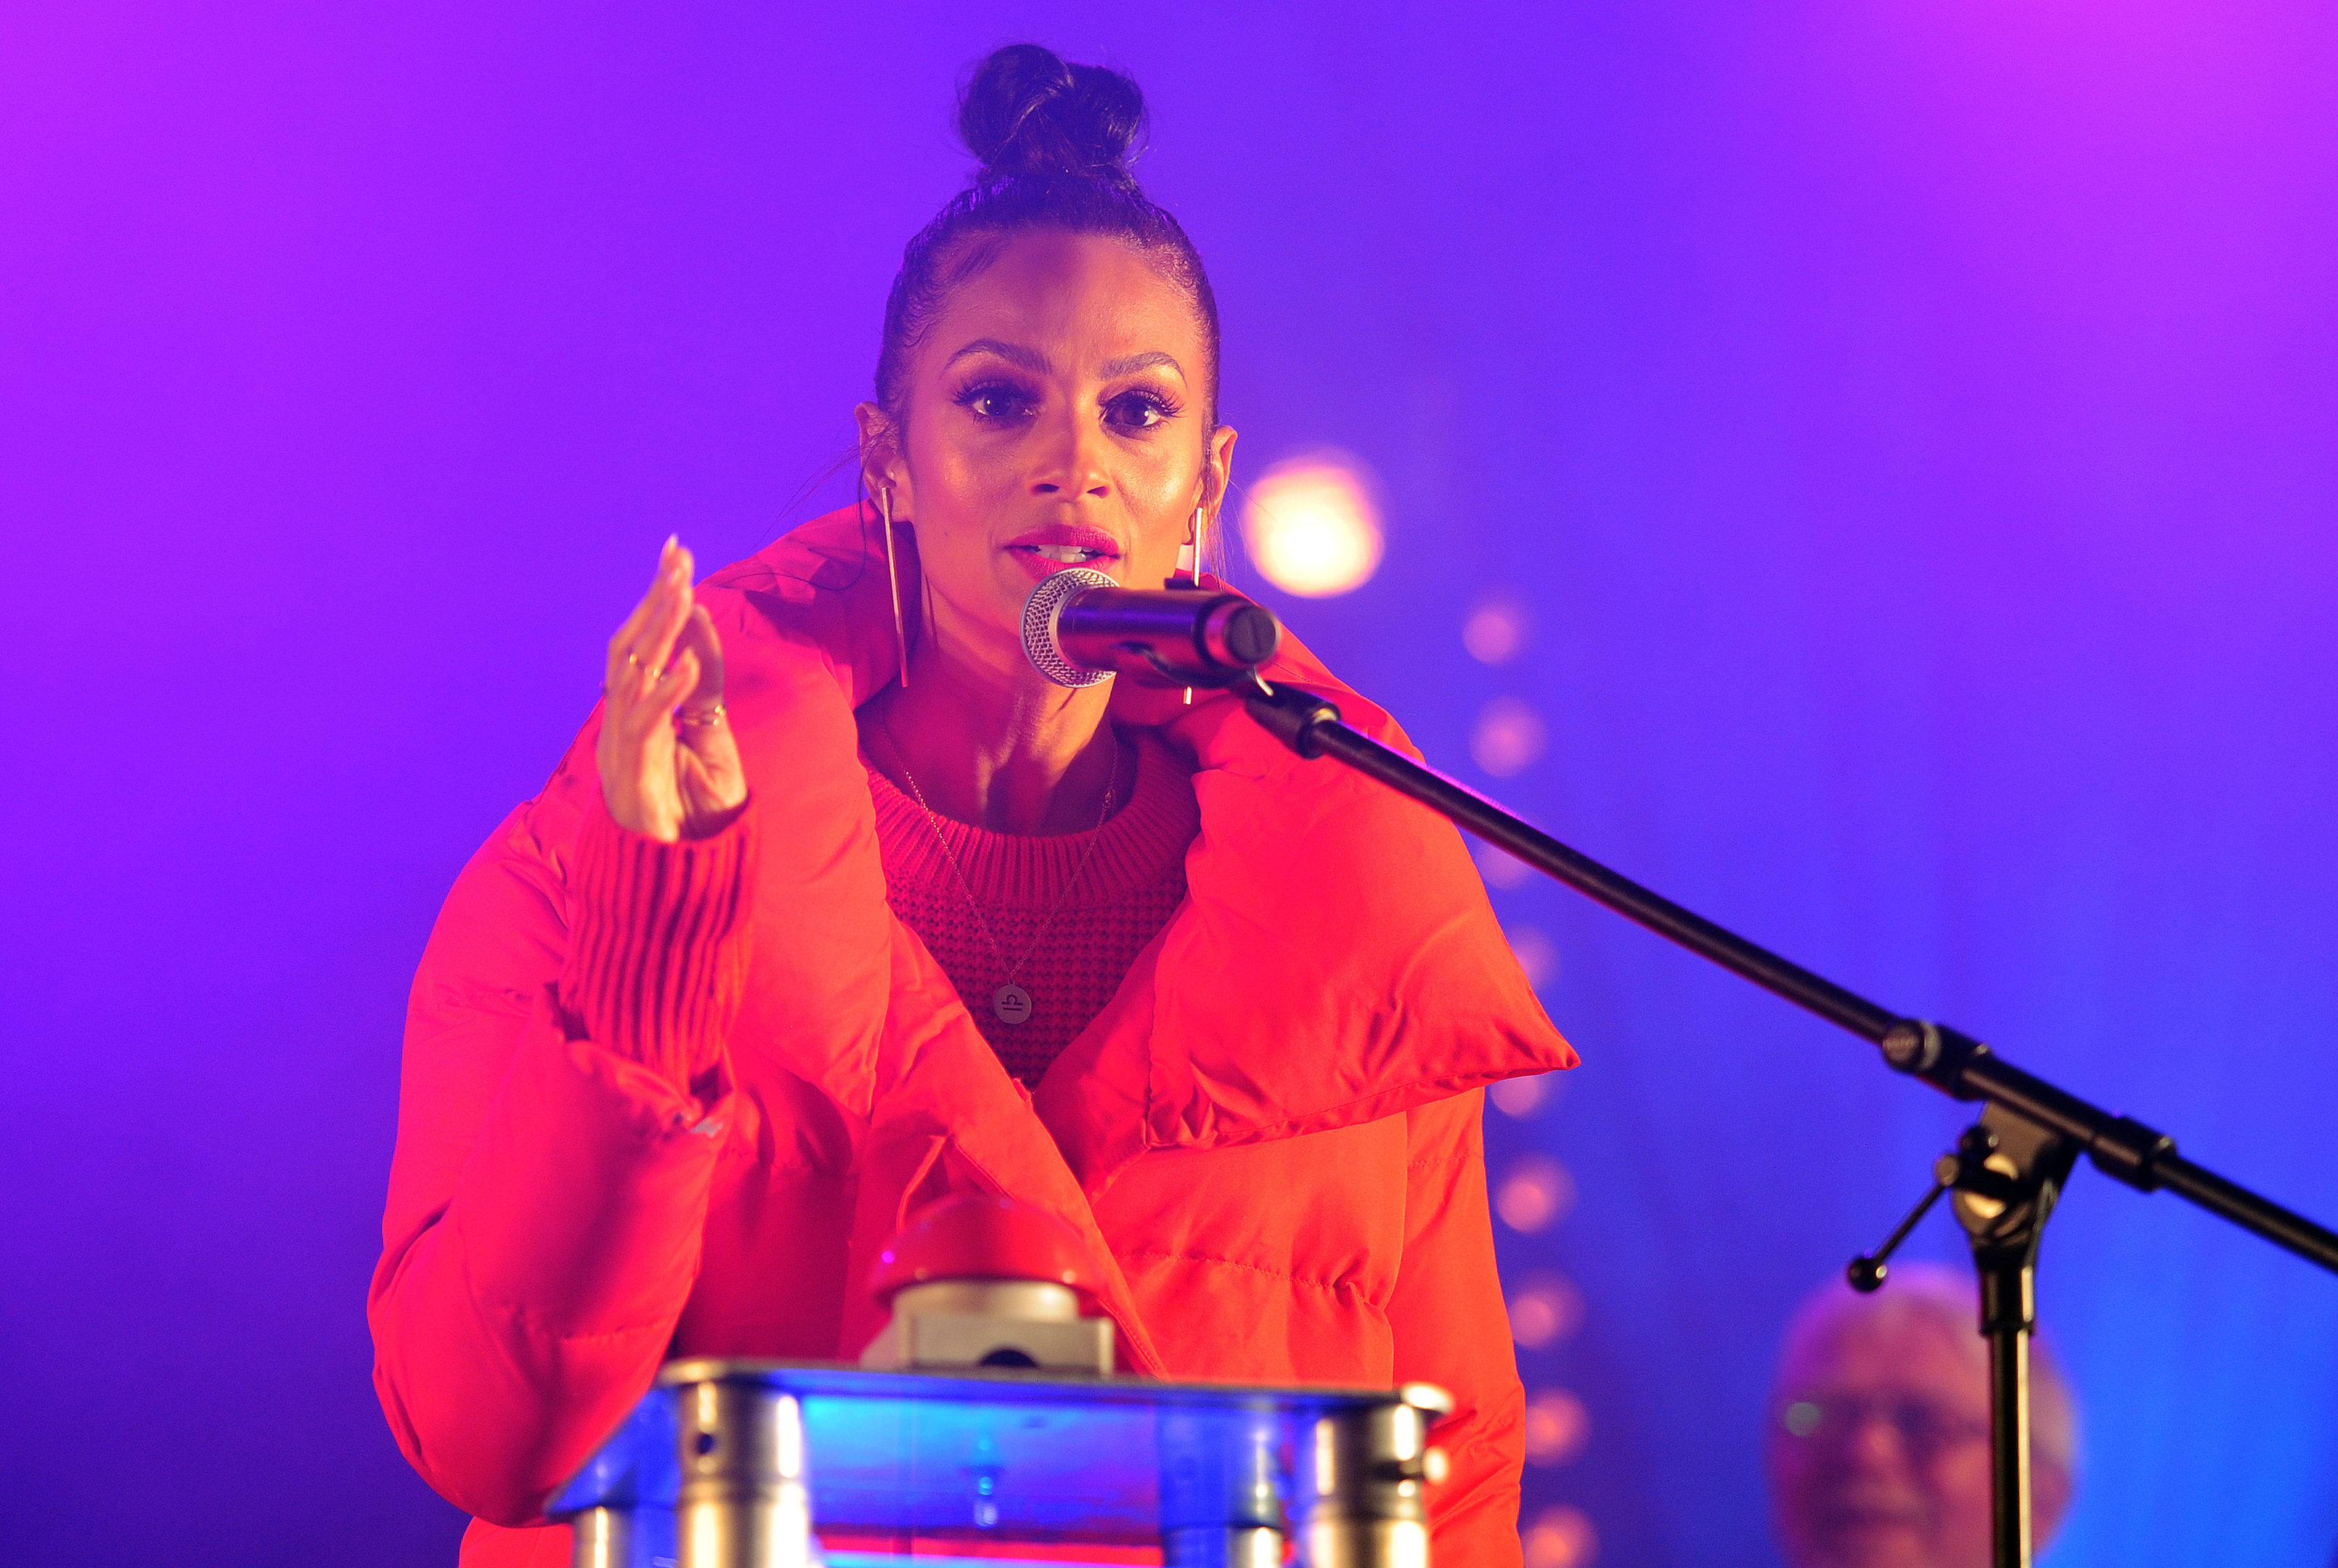 Alesha Dixon at the Perth Christmas lights switch-on in 2017.